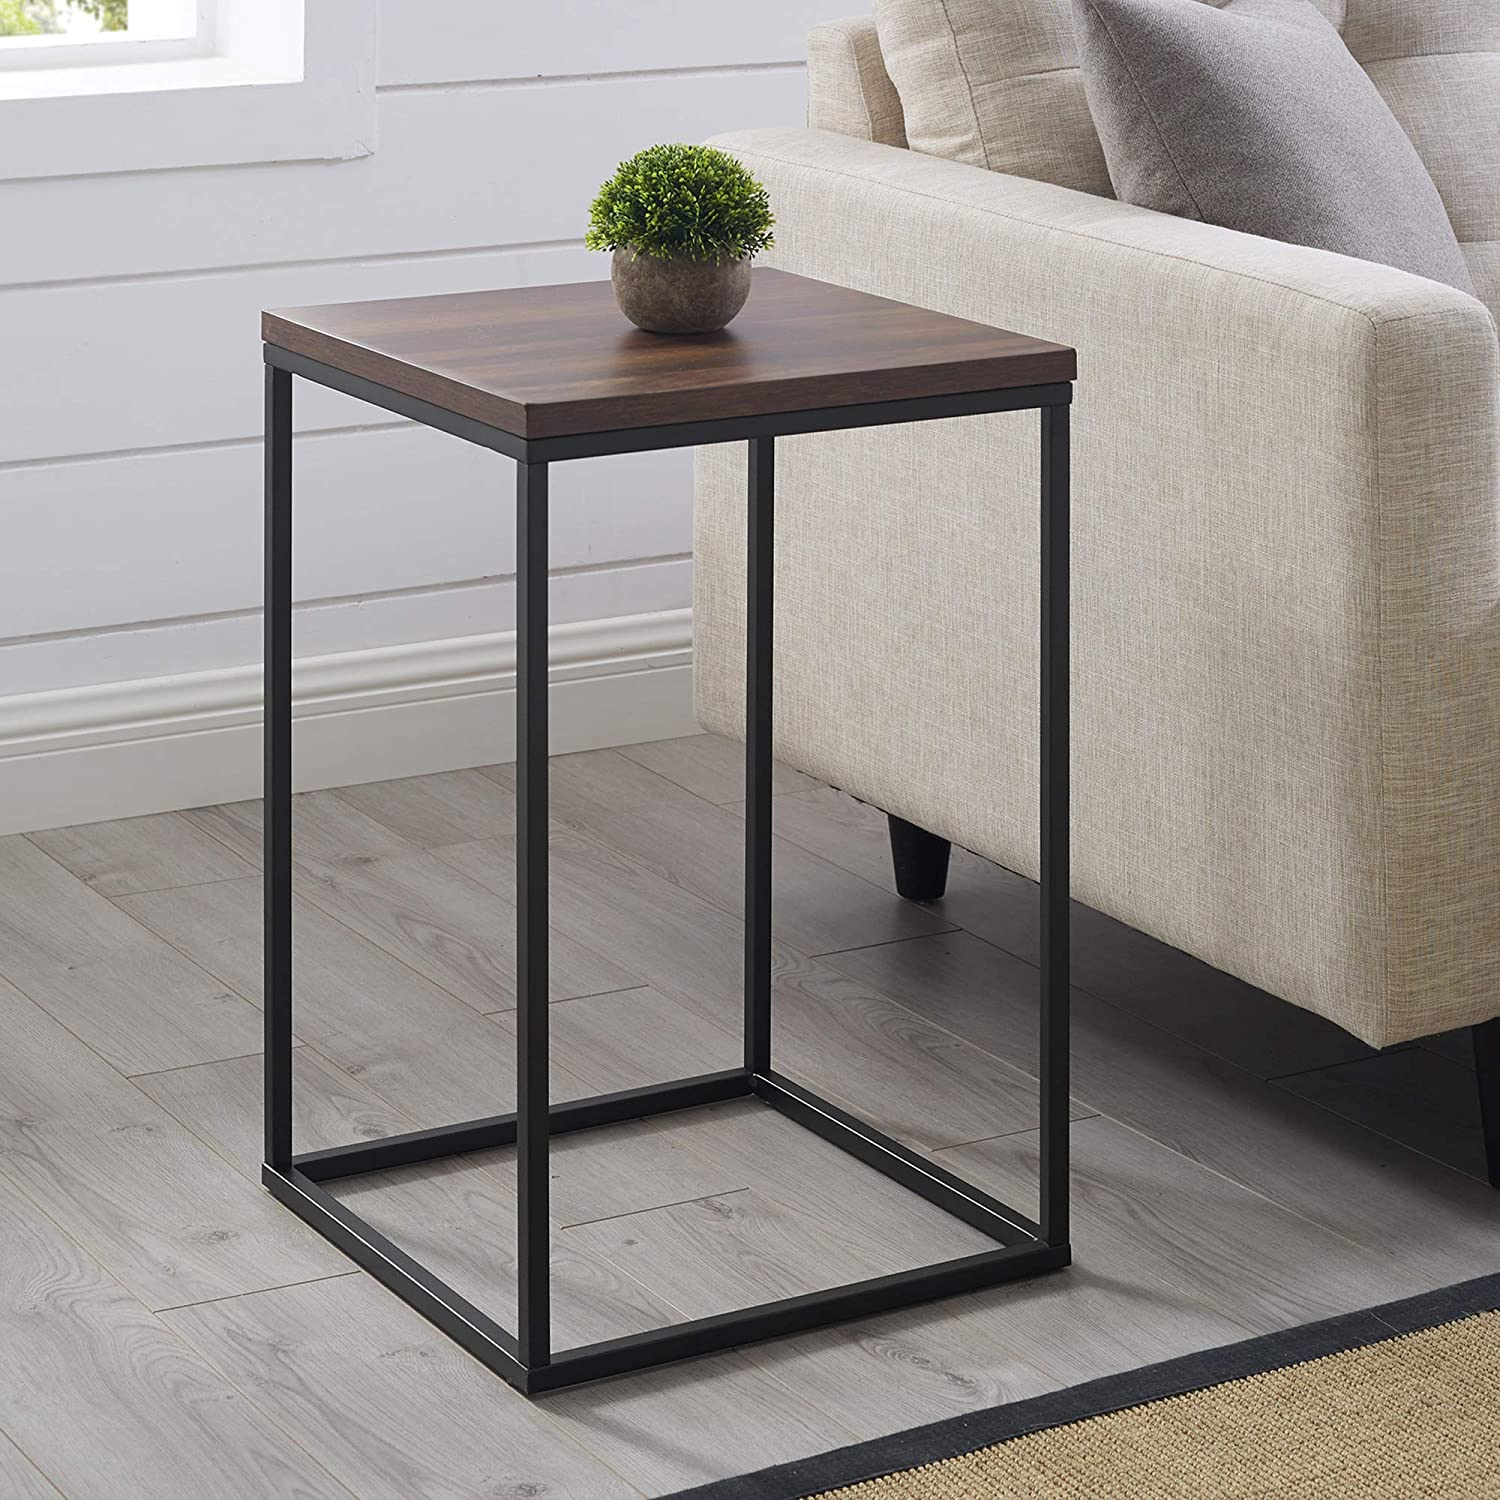 Walker Edison Modern Open Square Wood Side Accent Living Room Small End Table, 16 Inch, Dark Walnut